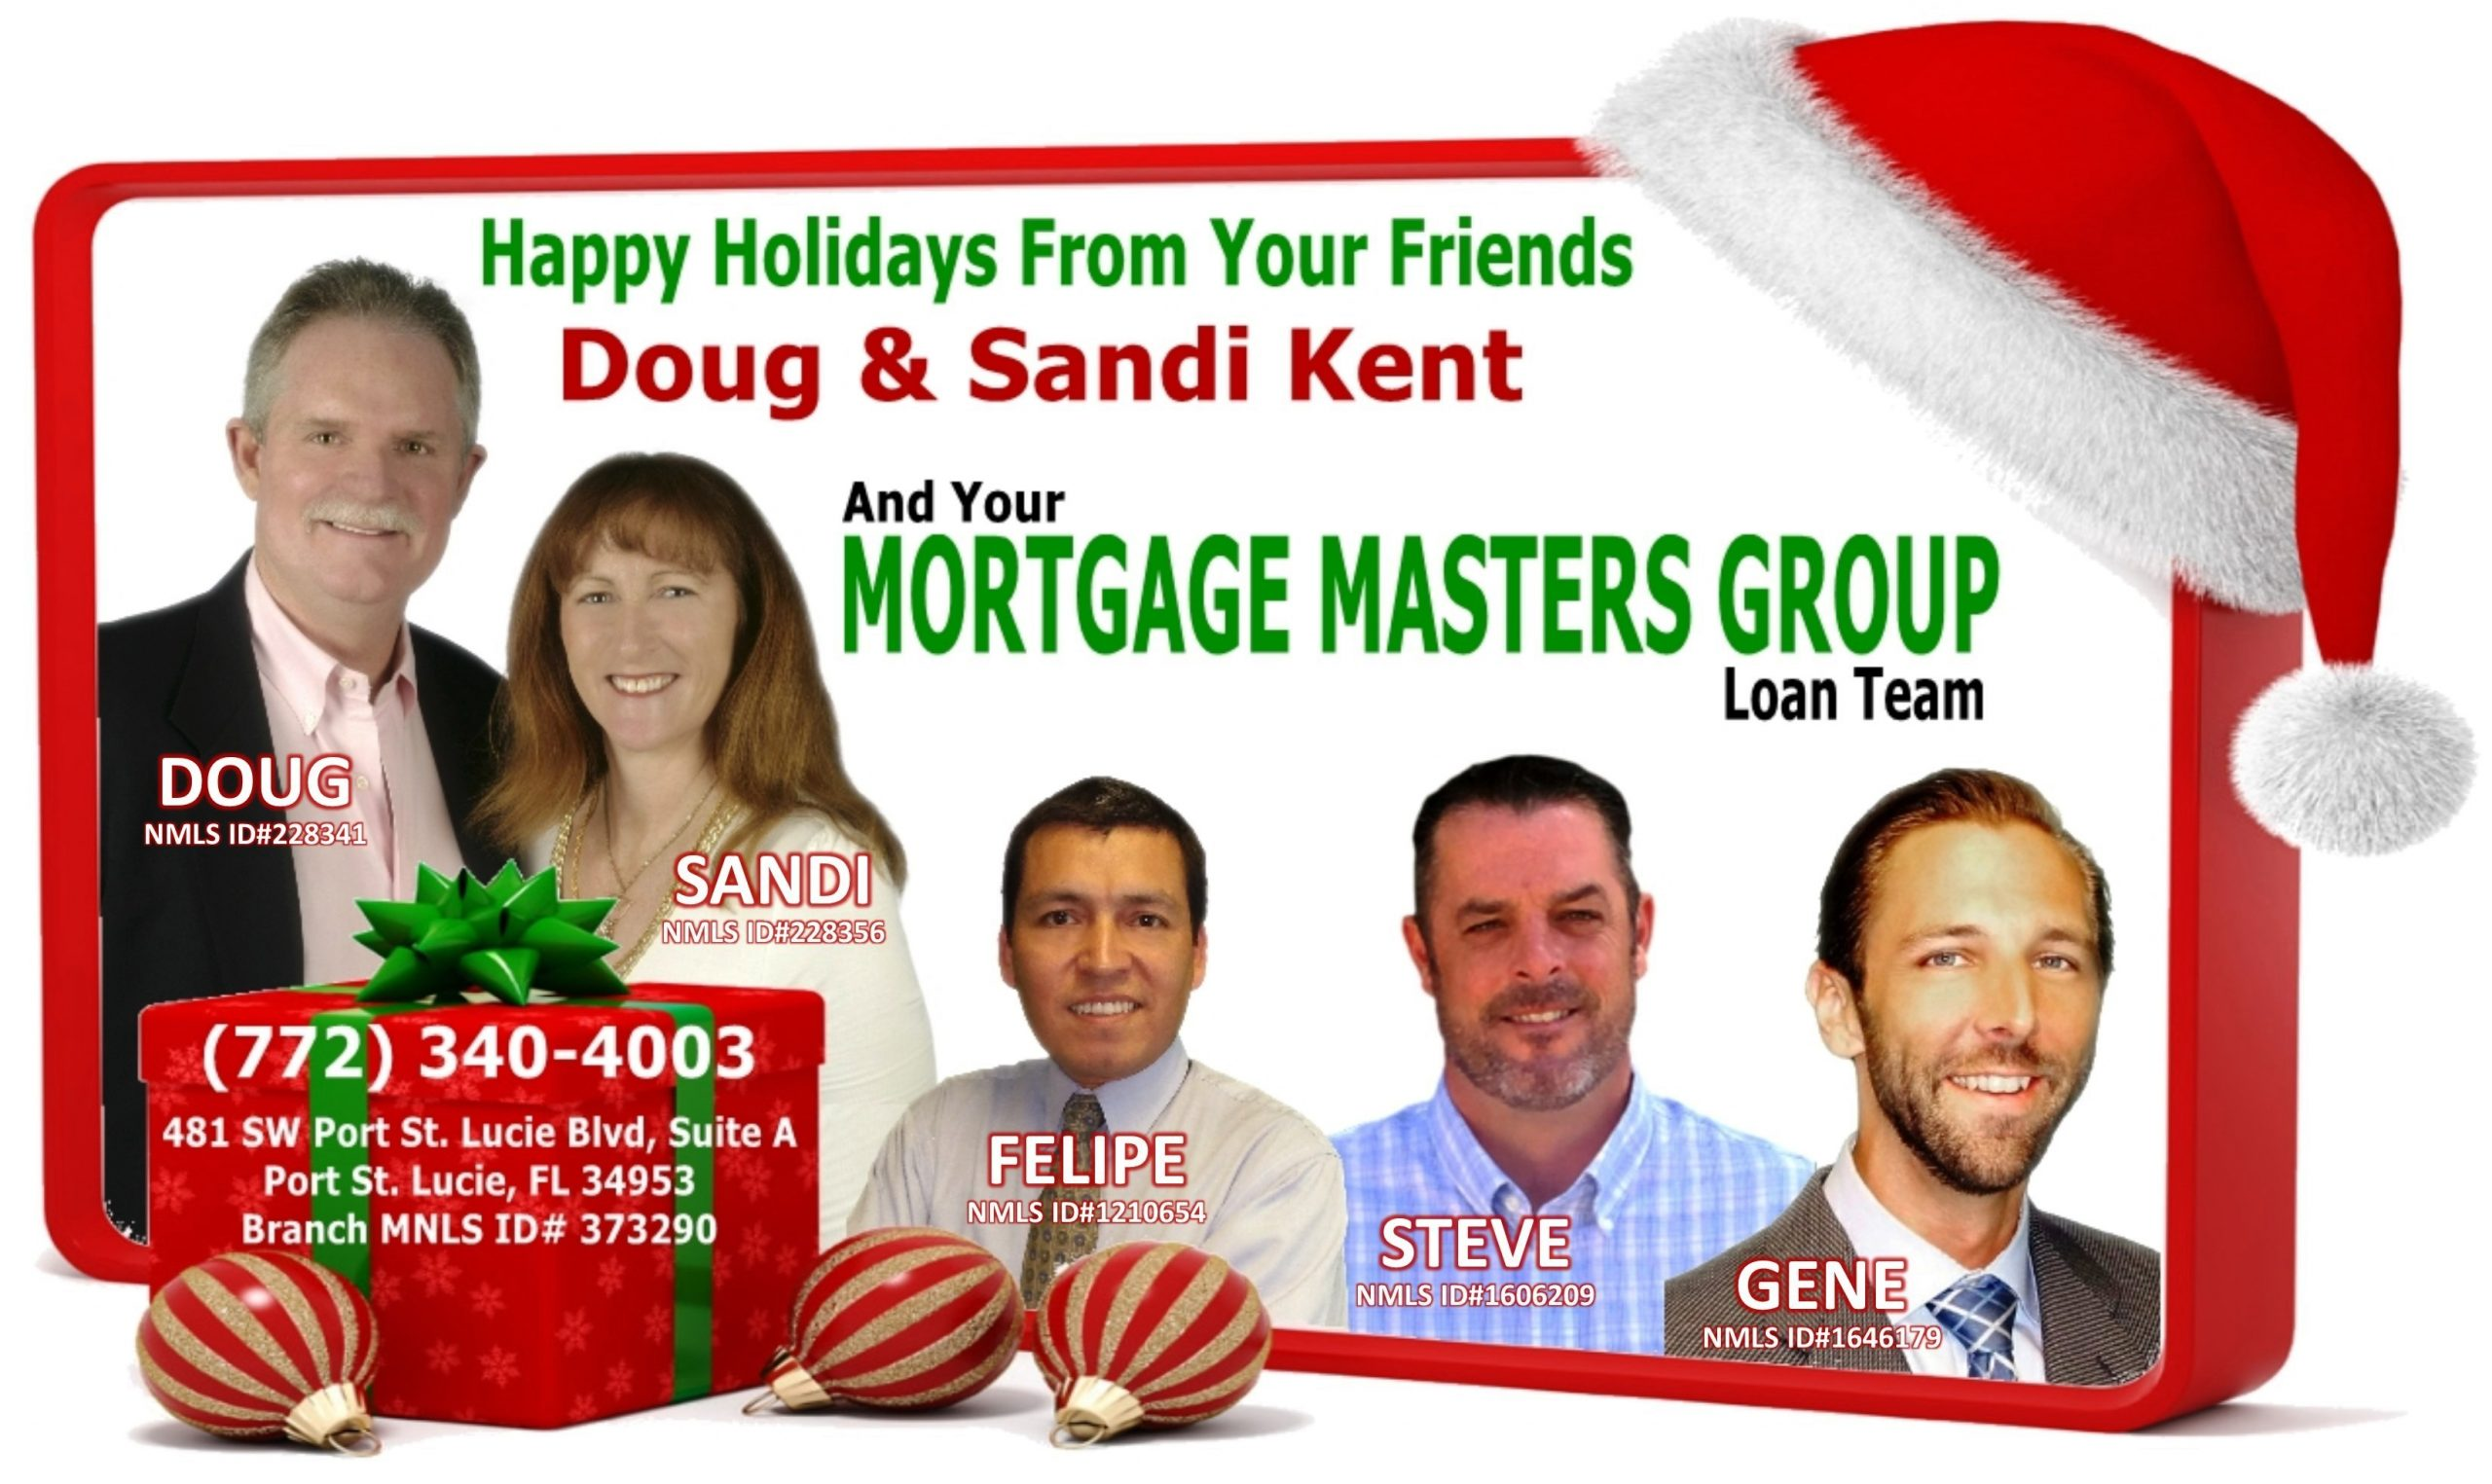 Holiday Greetings Video Slide featuring the entire Mortgage Masters Team